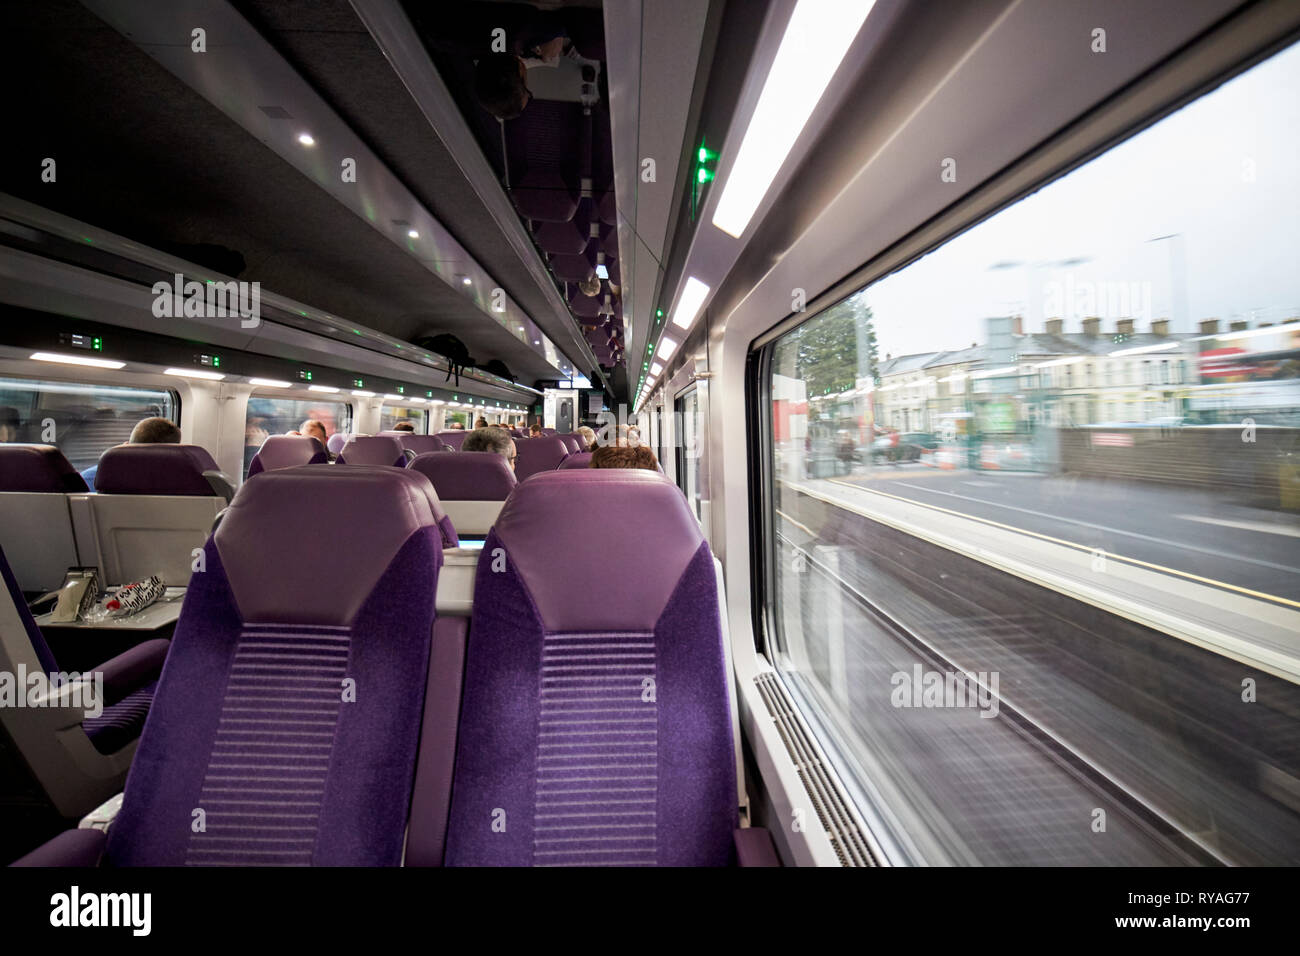 empty seat on enterprise train between Belfast and Dublin passing through station in northern ireland - Stock Image